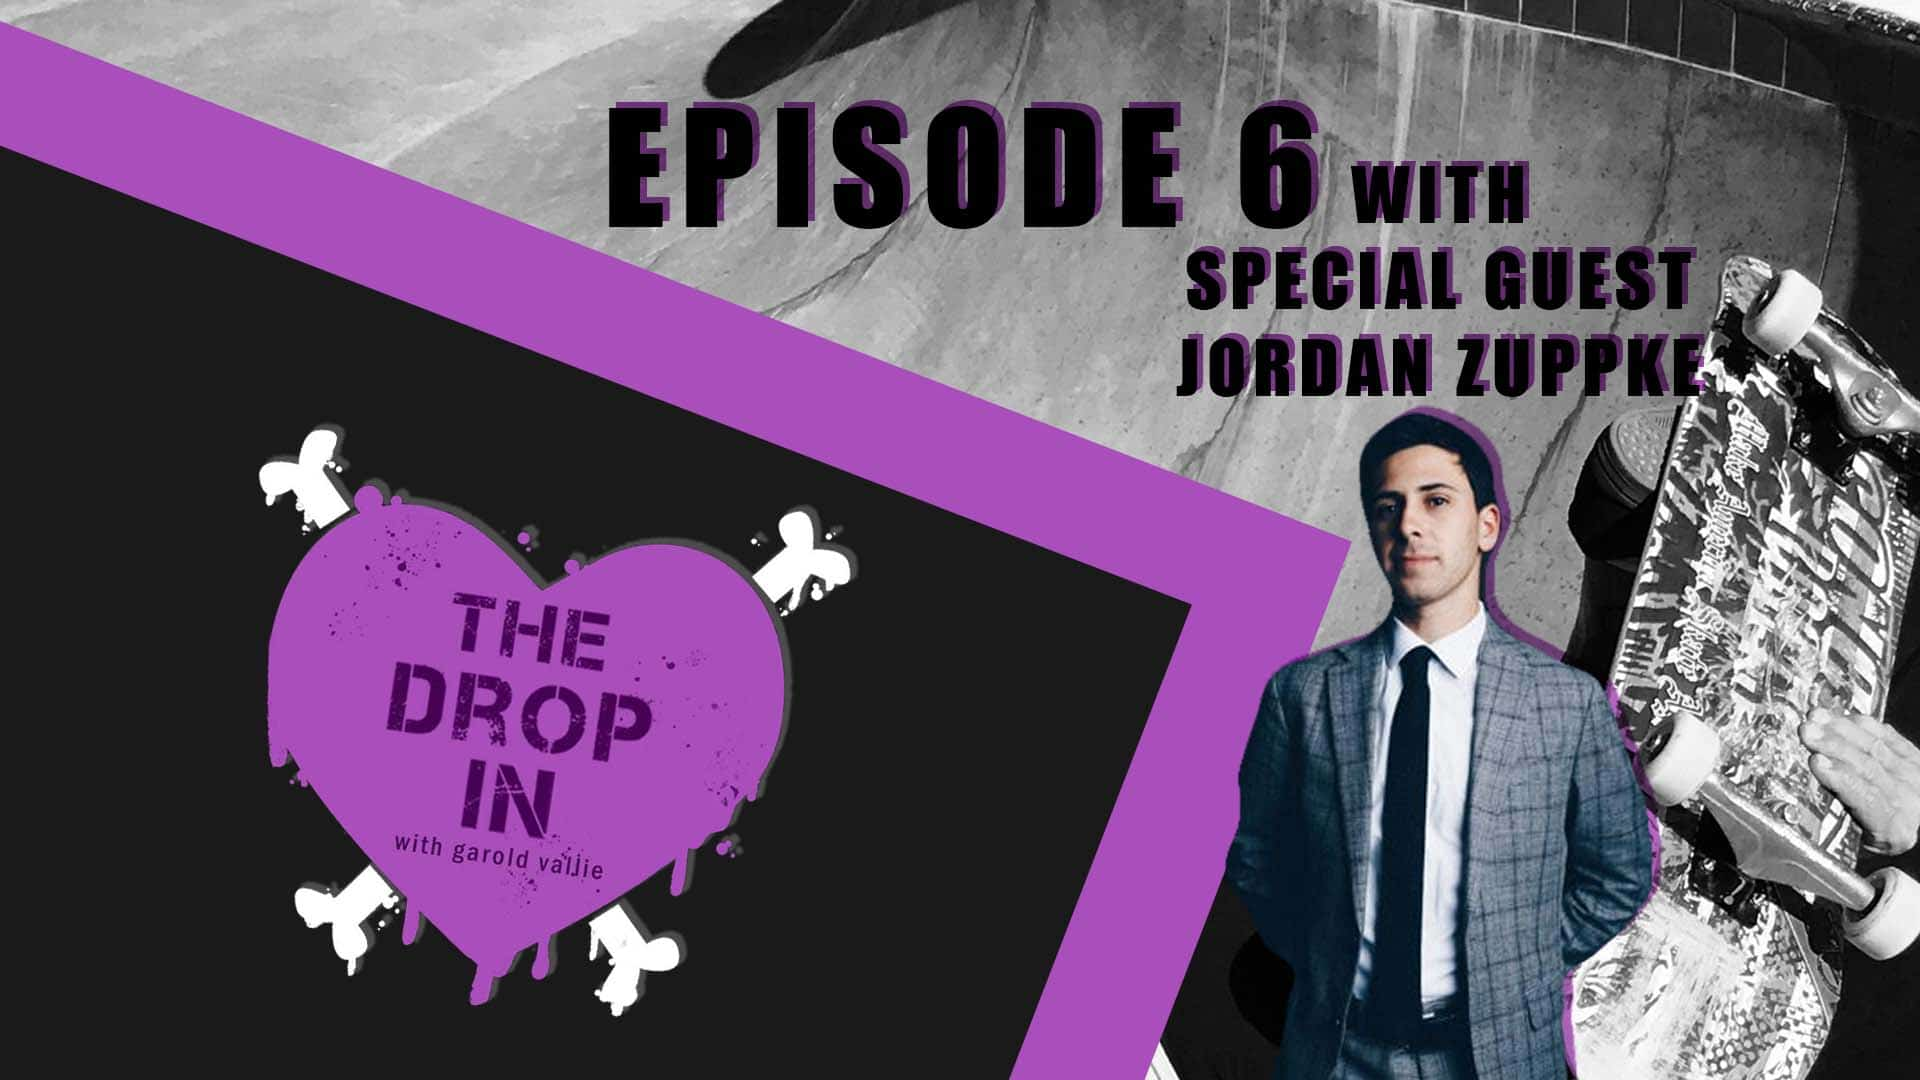 The Drop In with Garold Vallie - Episode 6